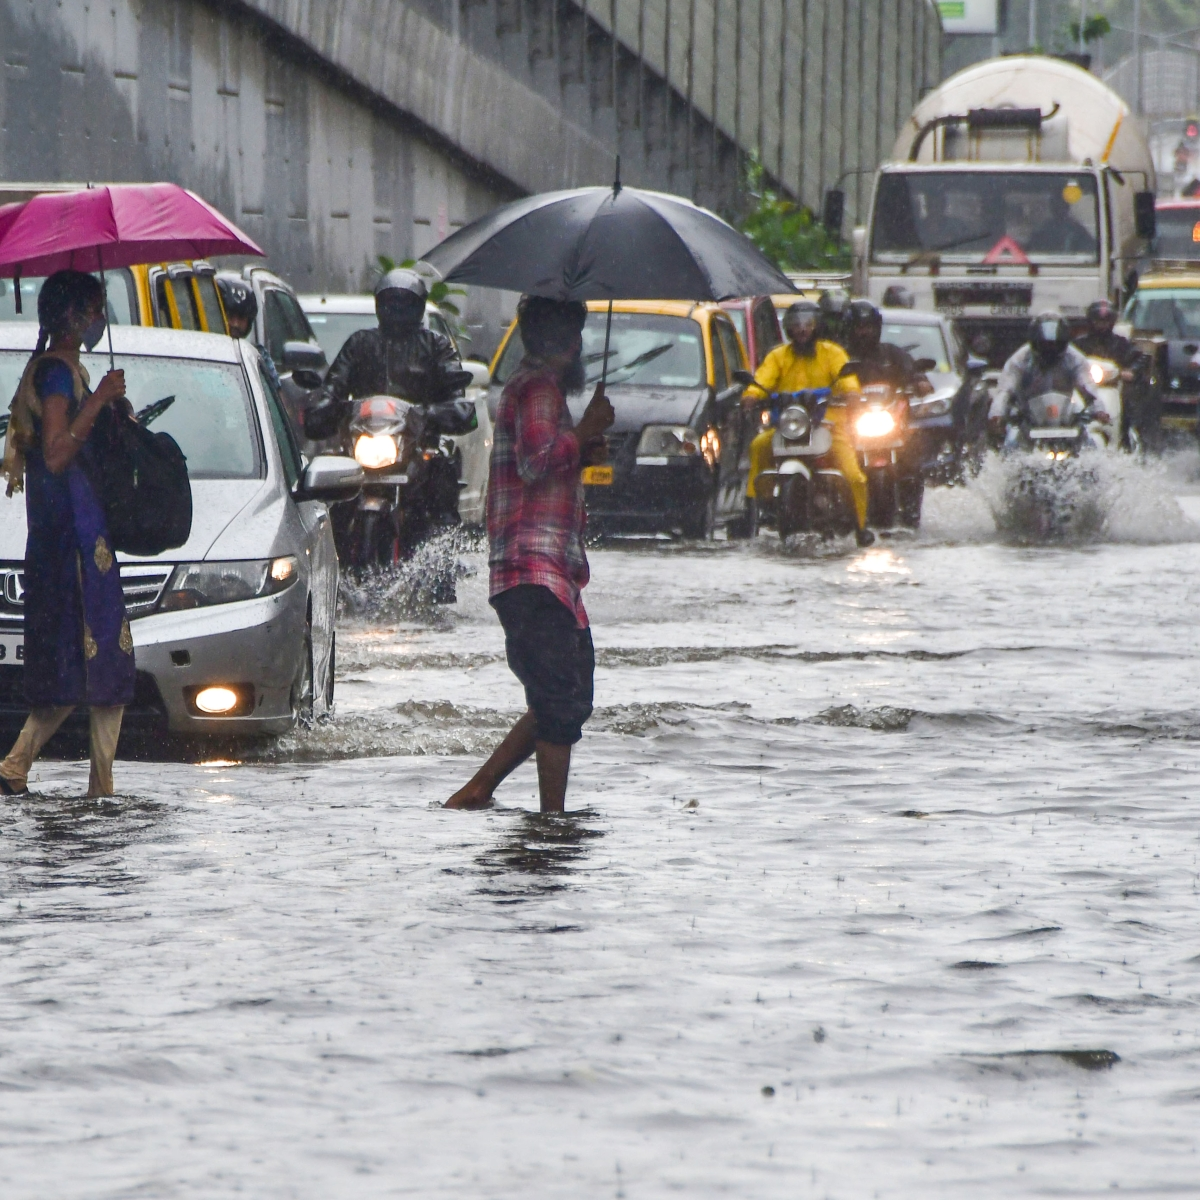 Mumbai weather update: As rain lashes city, IMD predicts moderate to heavy showers for today